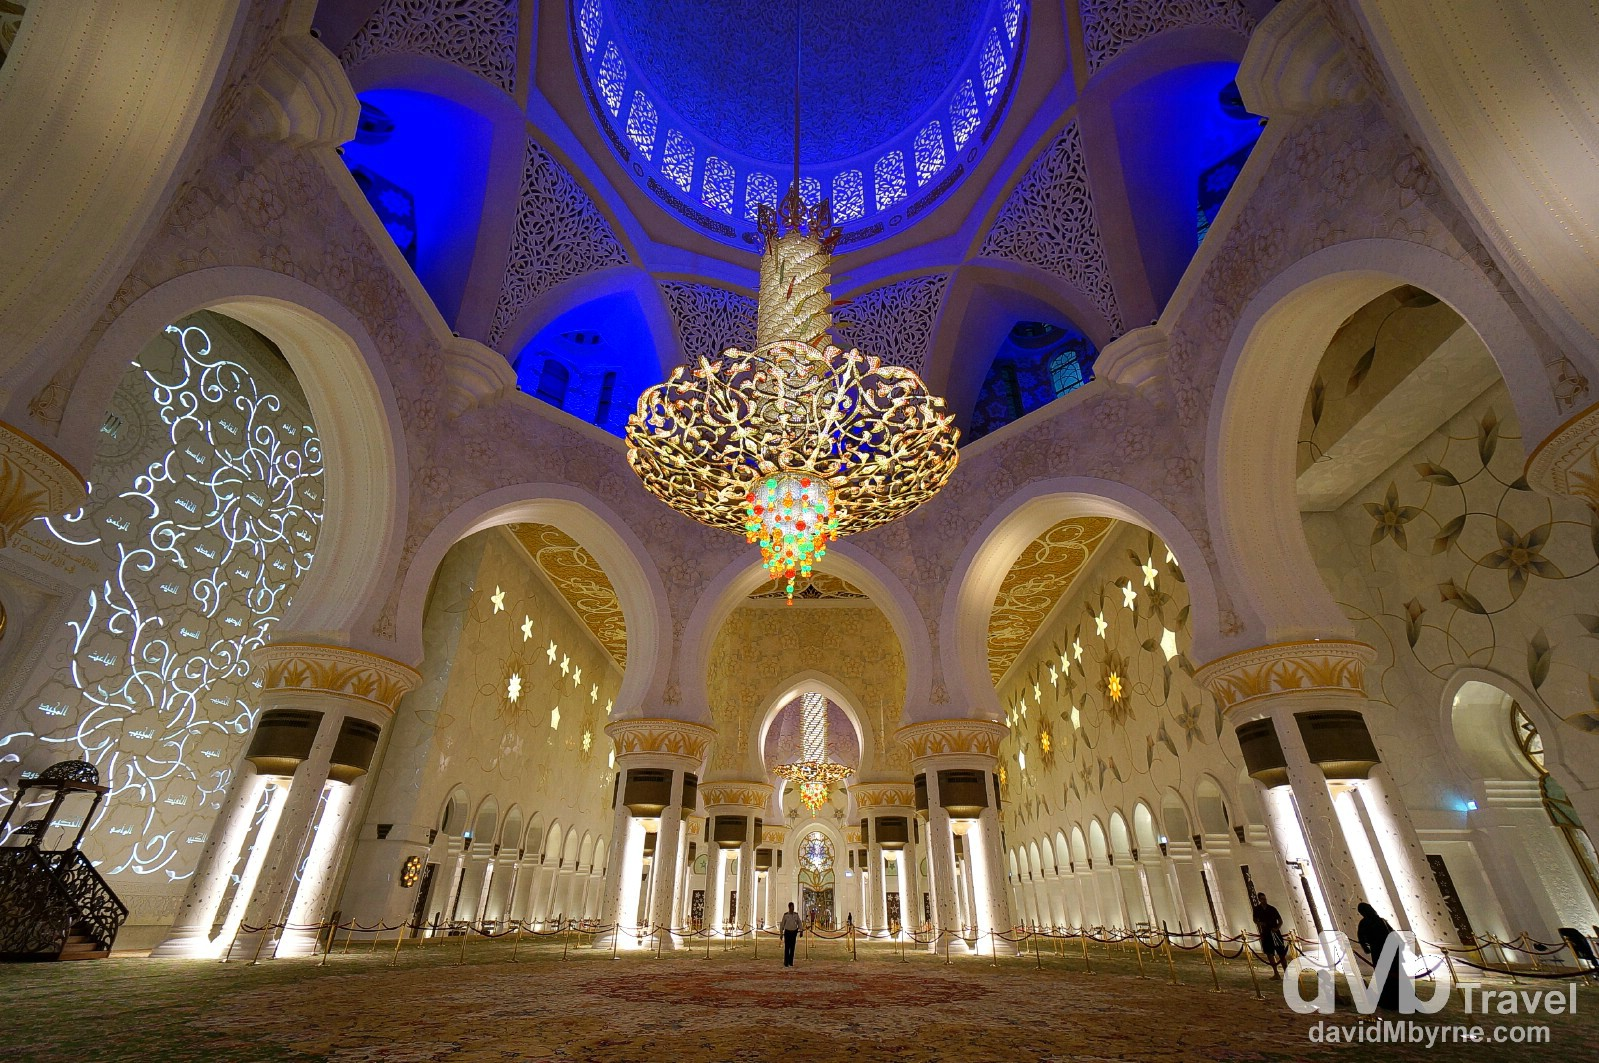 The Main Prayer Hall, Sheikh Zayed Grand Mosque, Abu Dhabi, UAE. April 22nd, 2014.